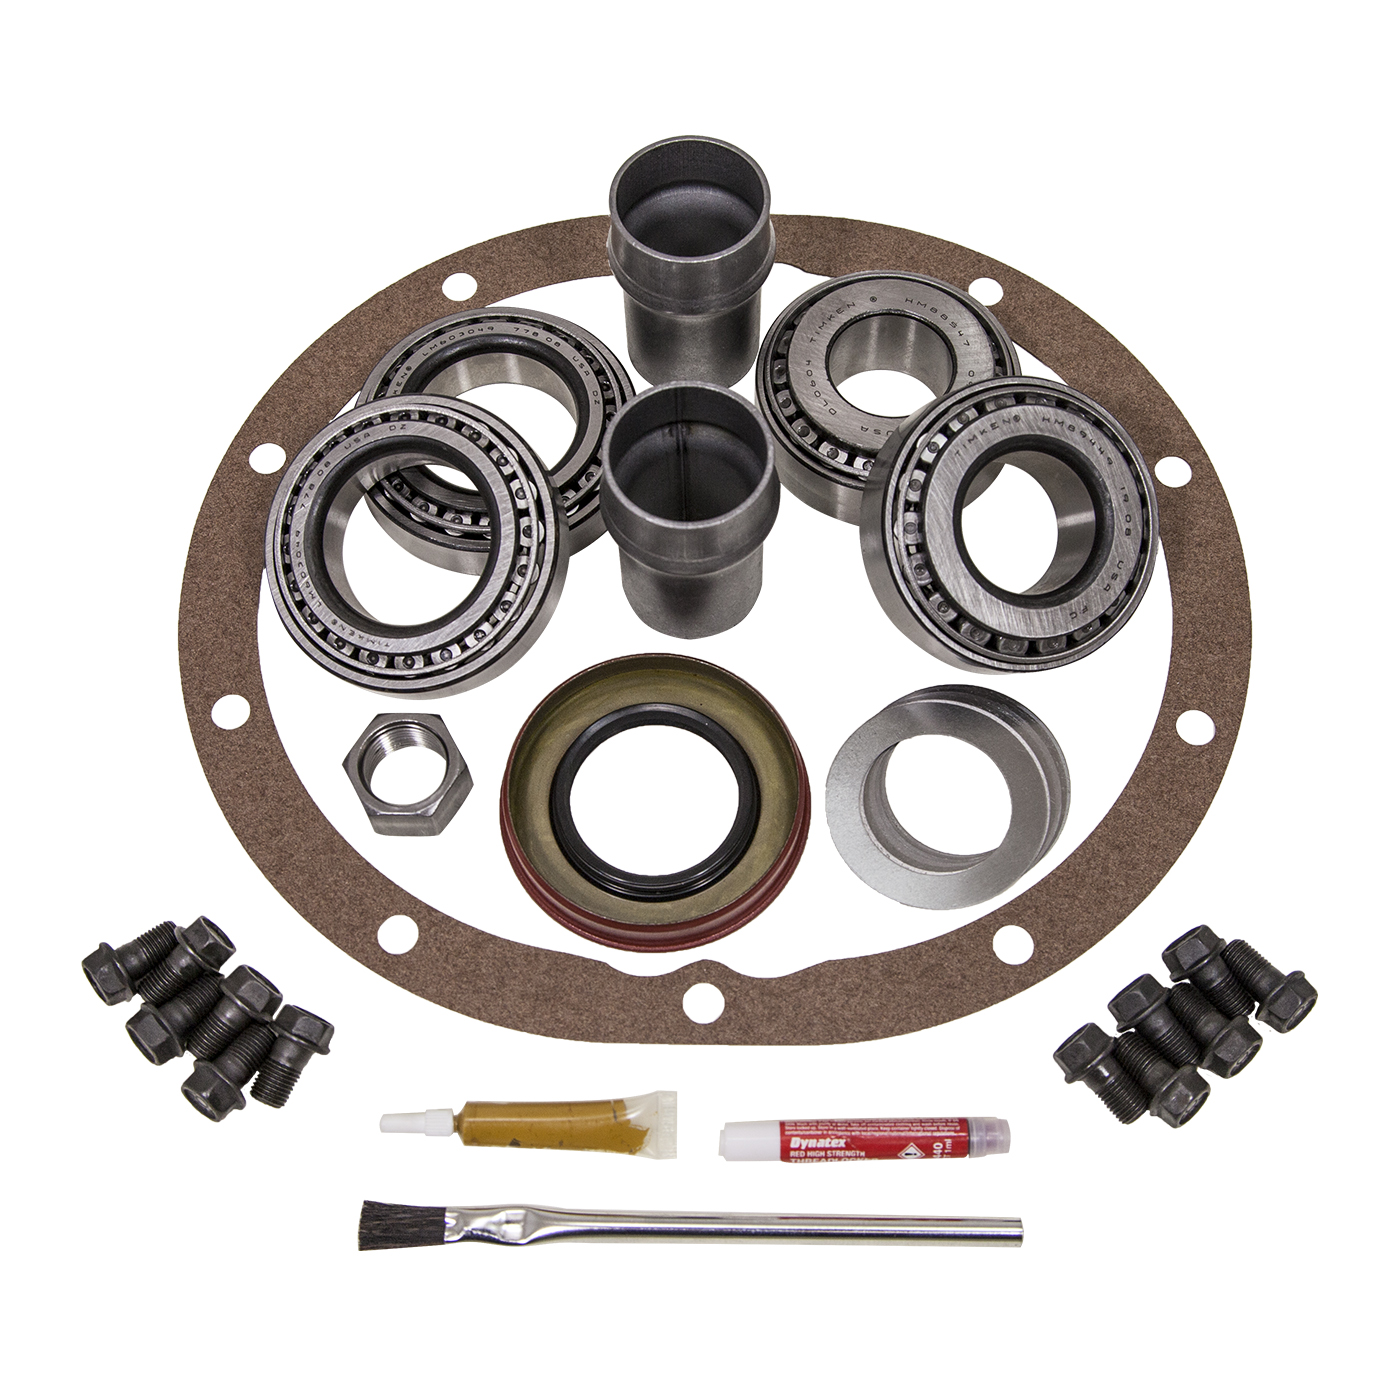 YK GM55CHEVY - Yukon Master Overhaul kit for GM Chevy 55P and 55T differential